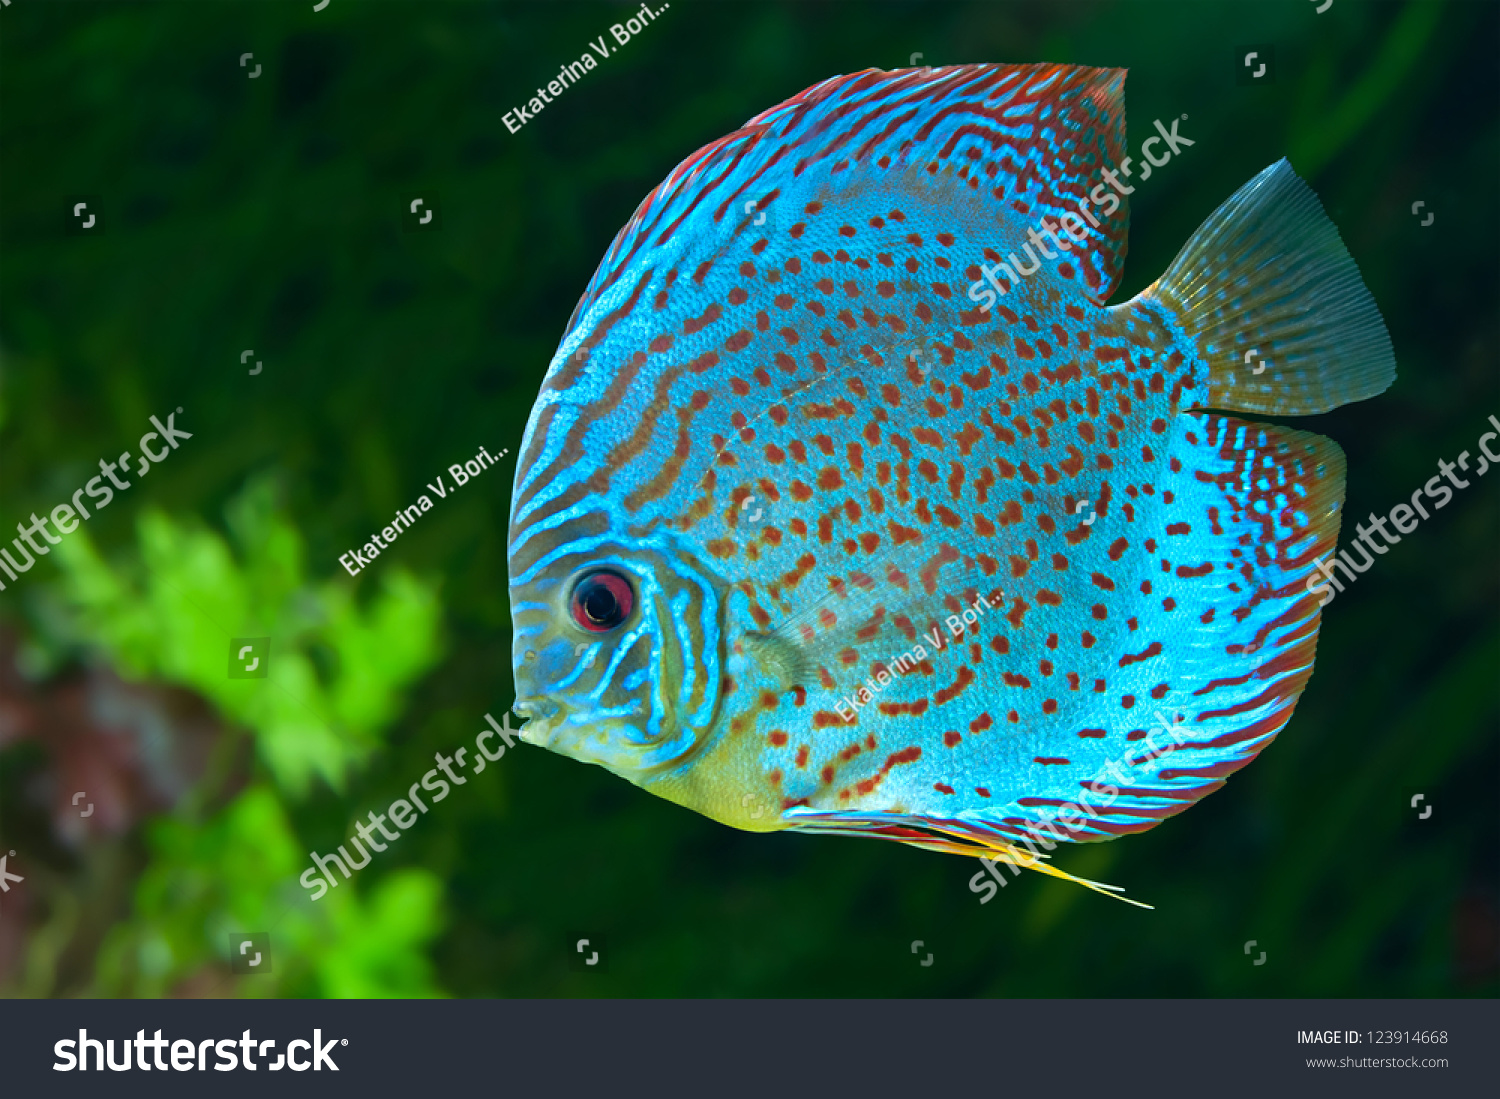 Freshwater fish amazon - Freshwater Fish Native To The Amazon River In